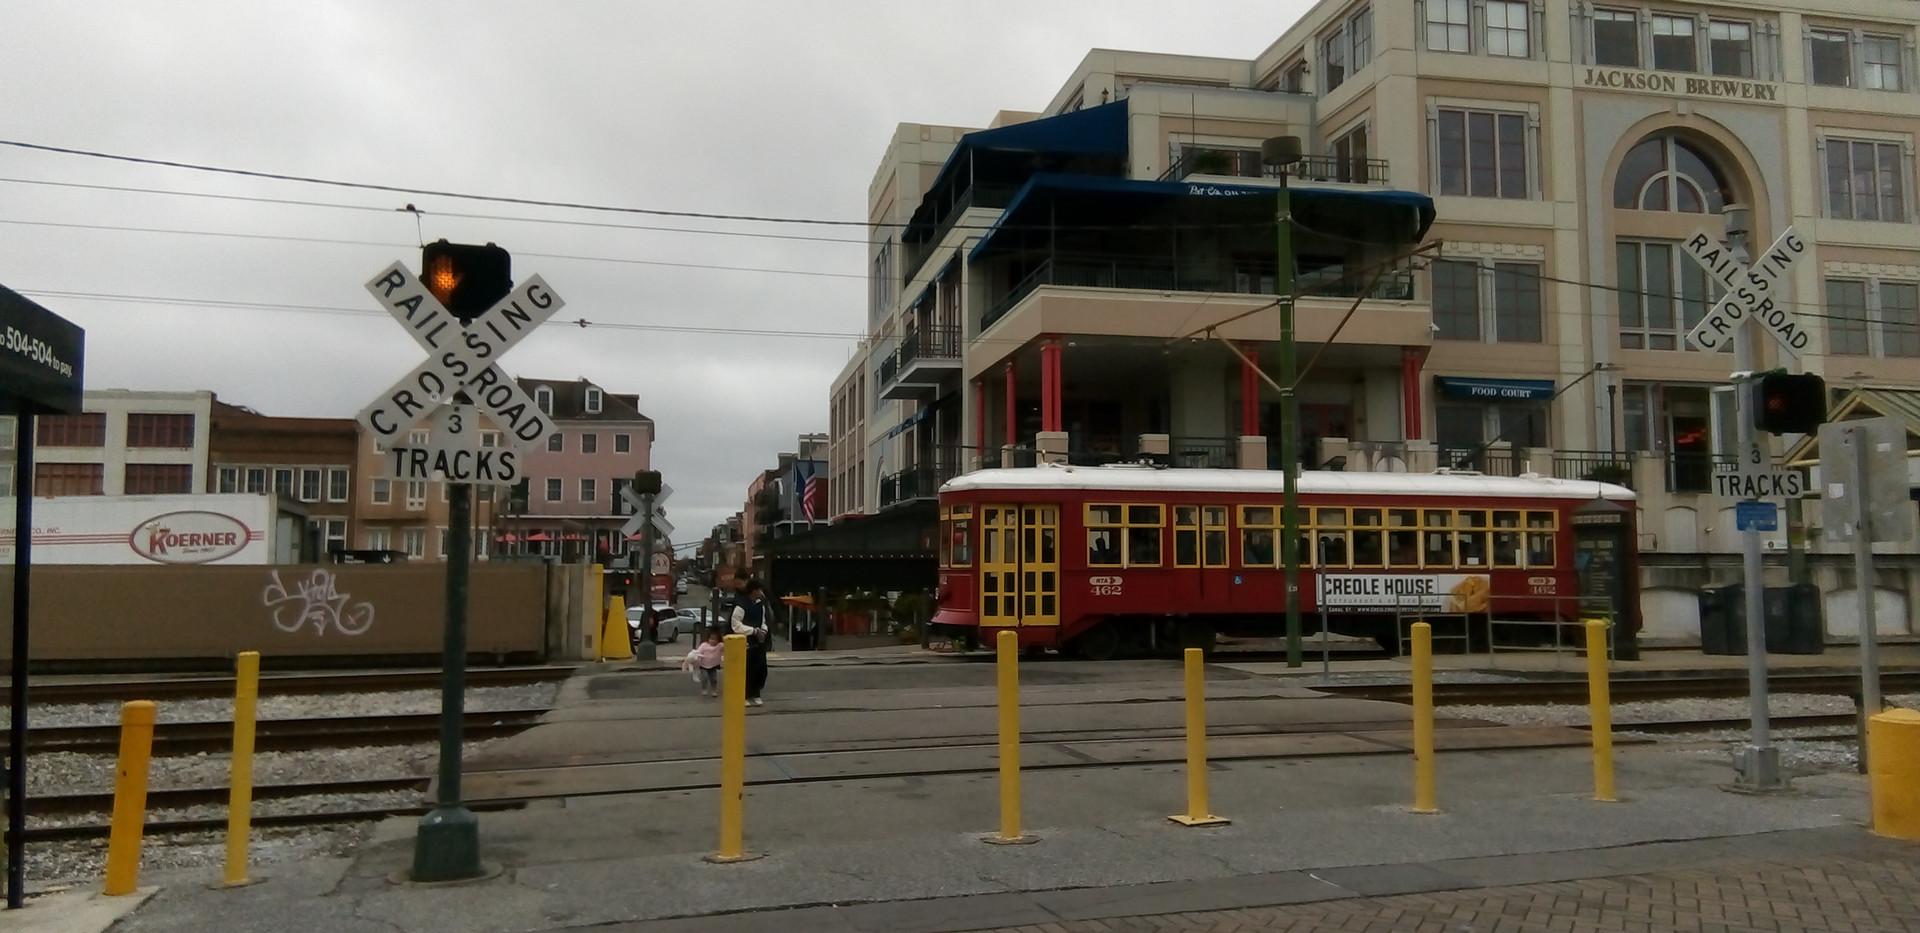 Tram to Paddle Steamer